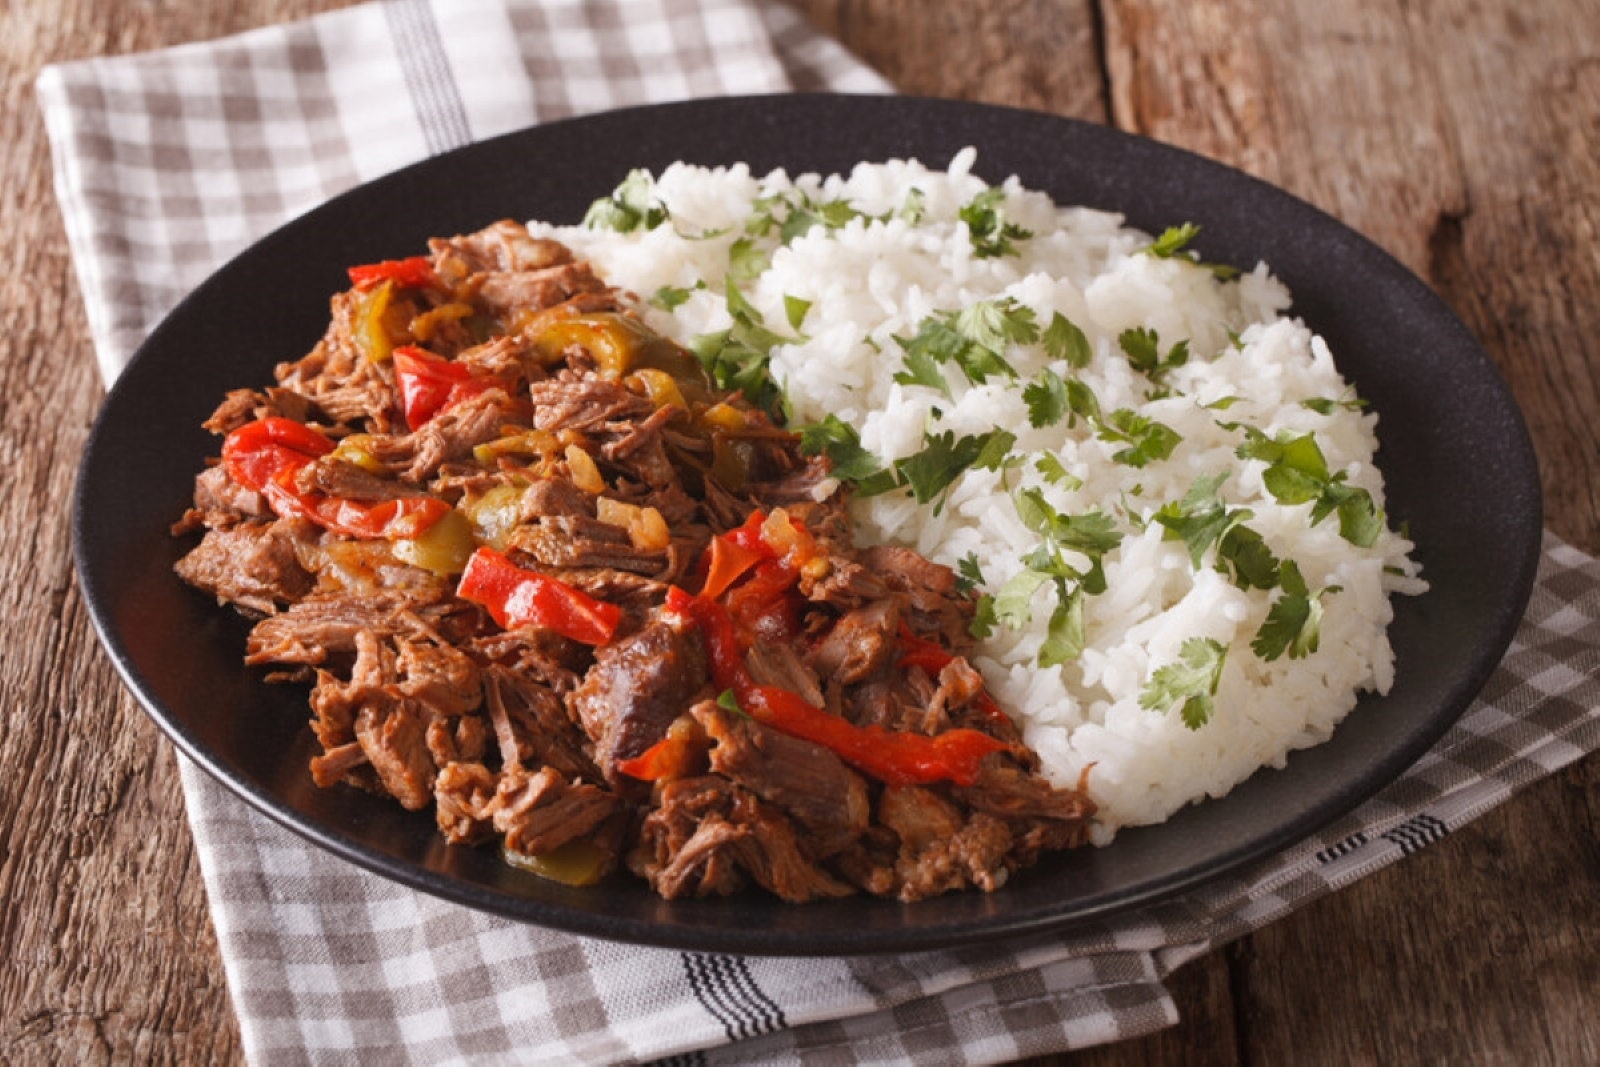 Ropa Vieja next to a bed or white rice with cilantro garnish presented on a black plate sitting on a brown plaid napkin and wooden table